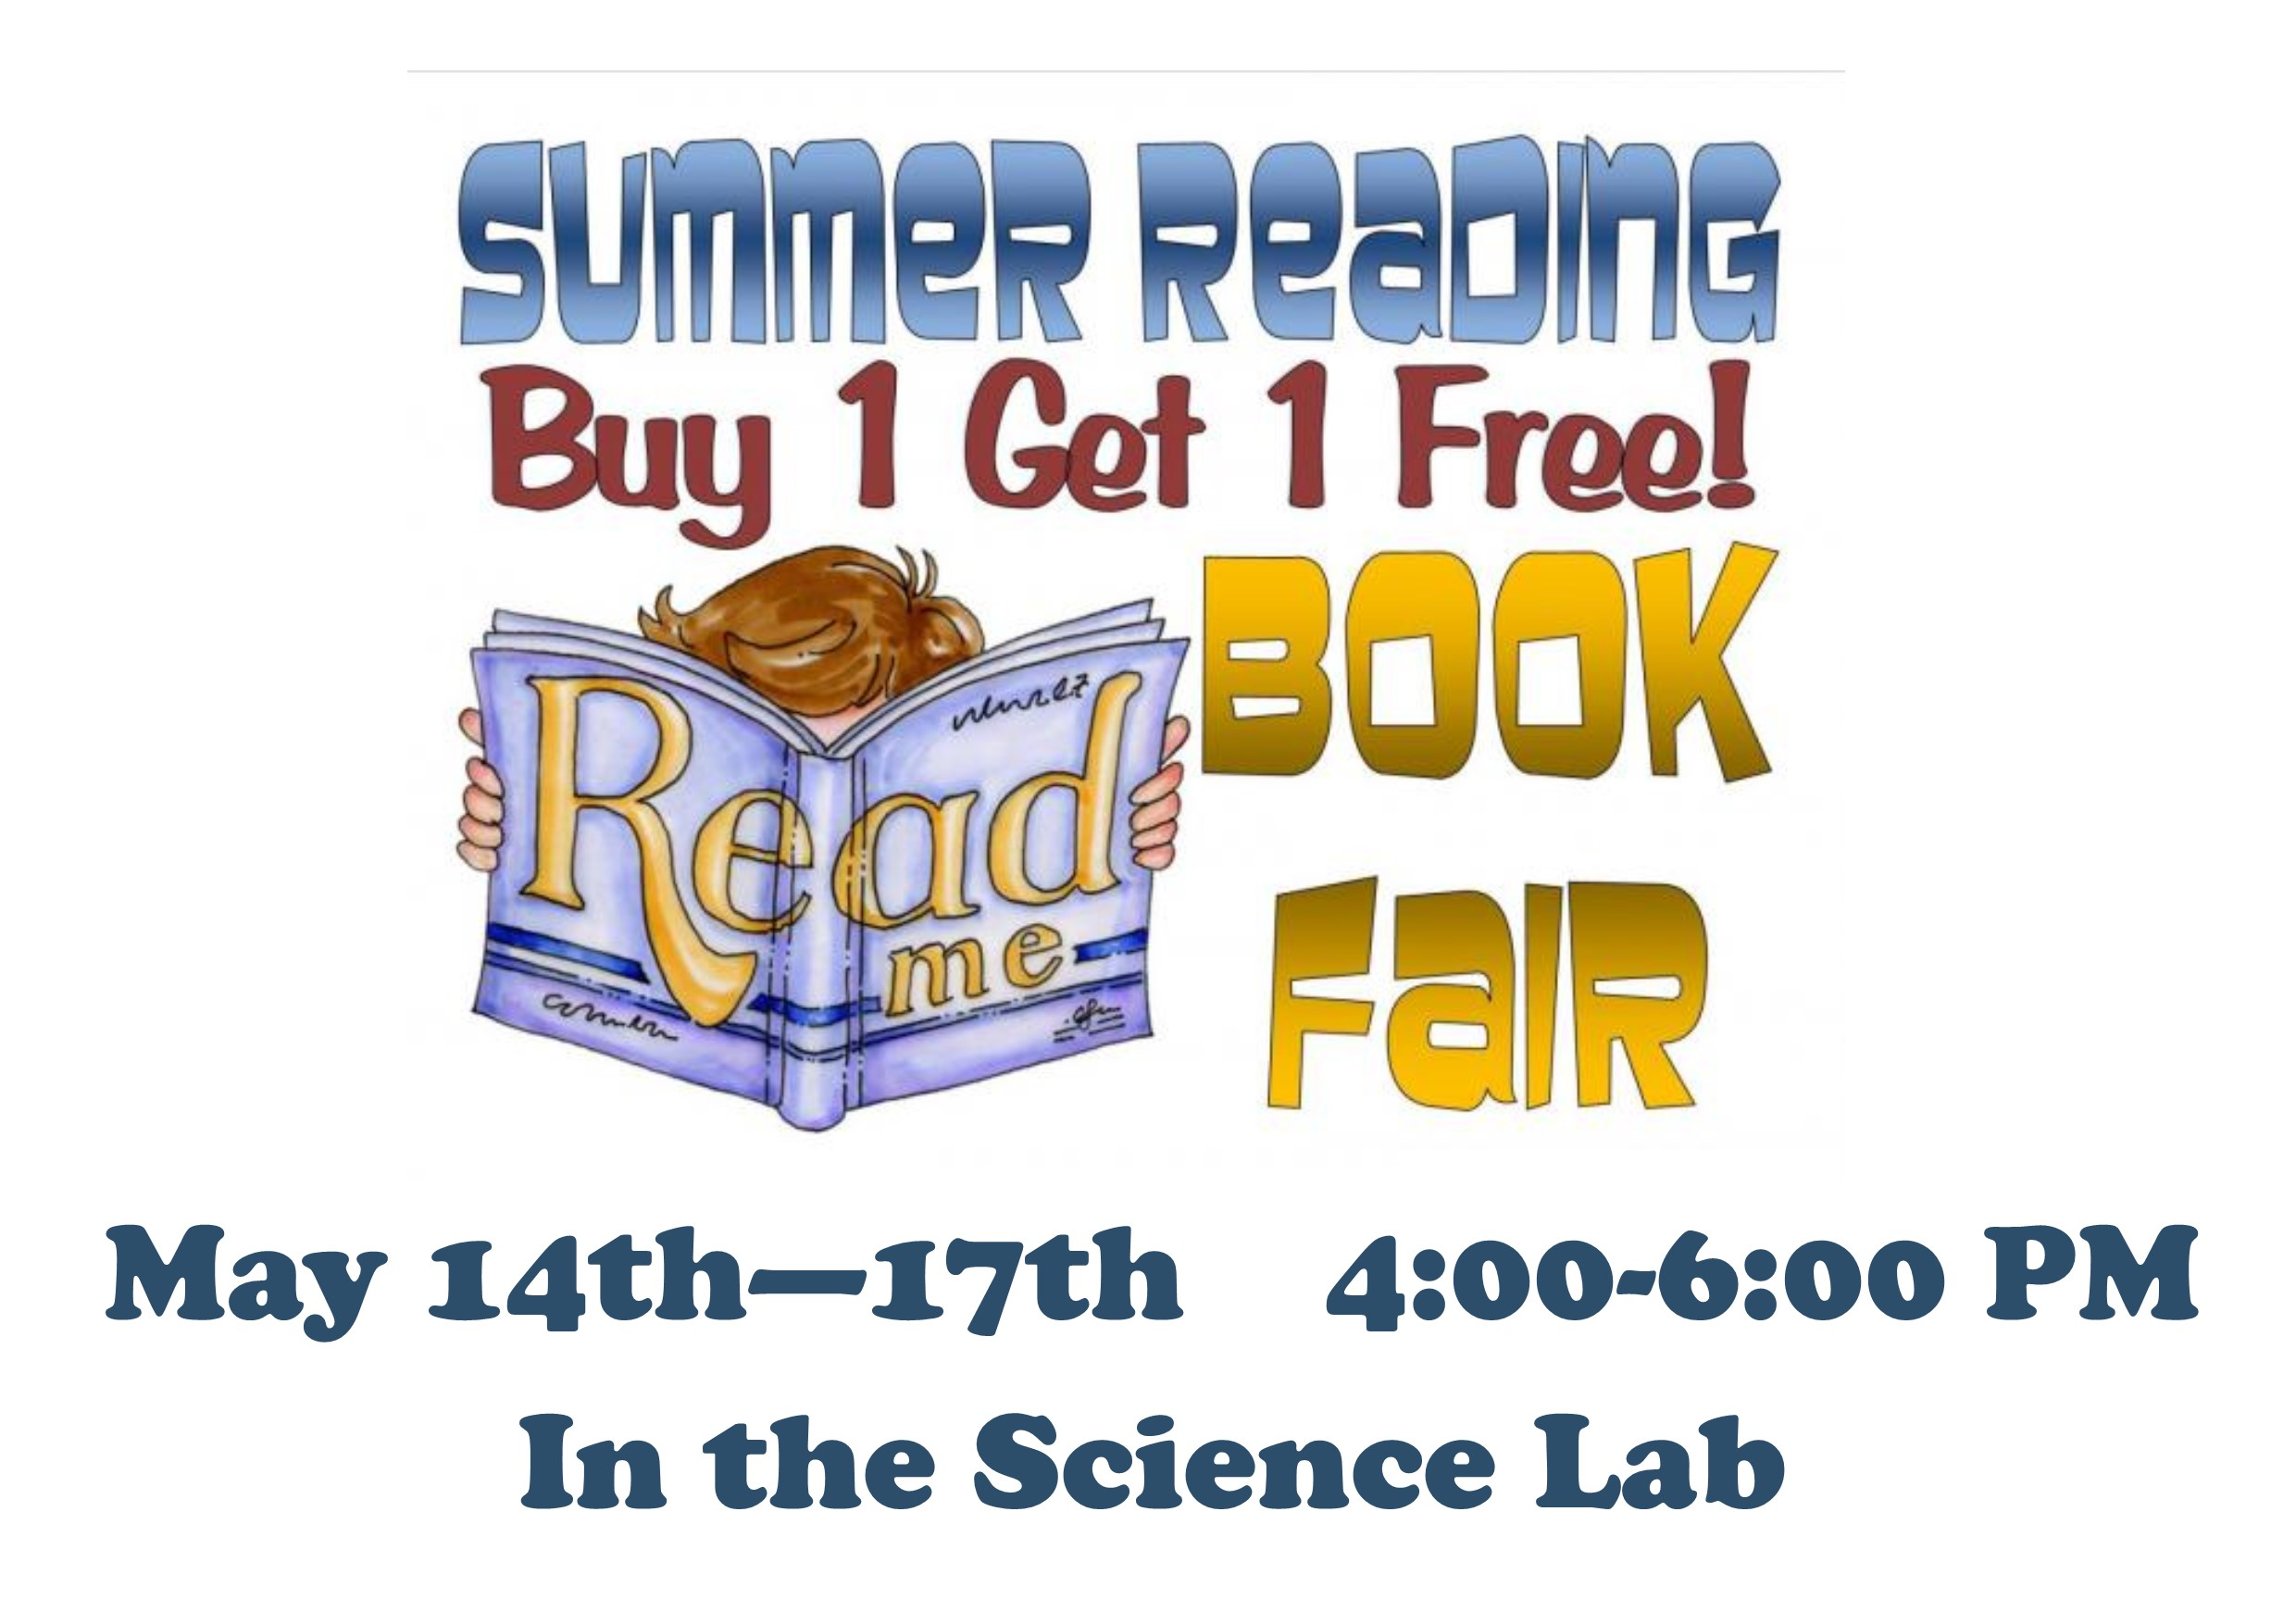 Buy  One, Get One FREE Book Fair!